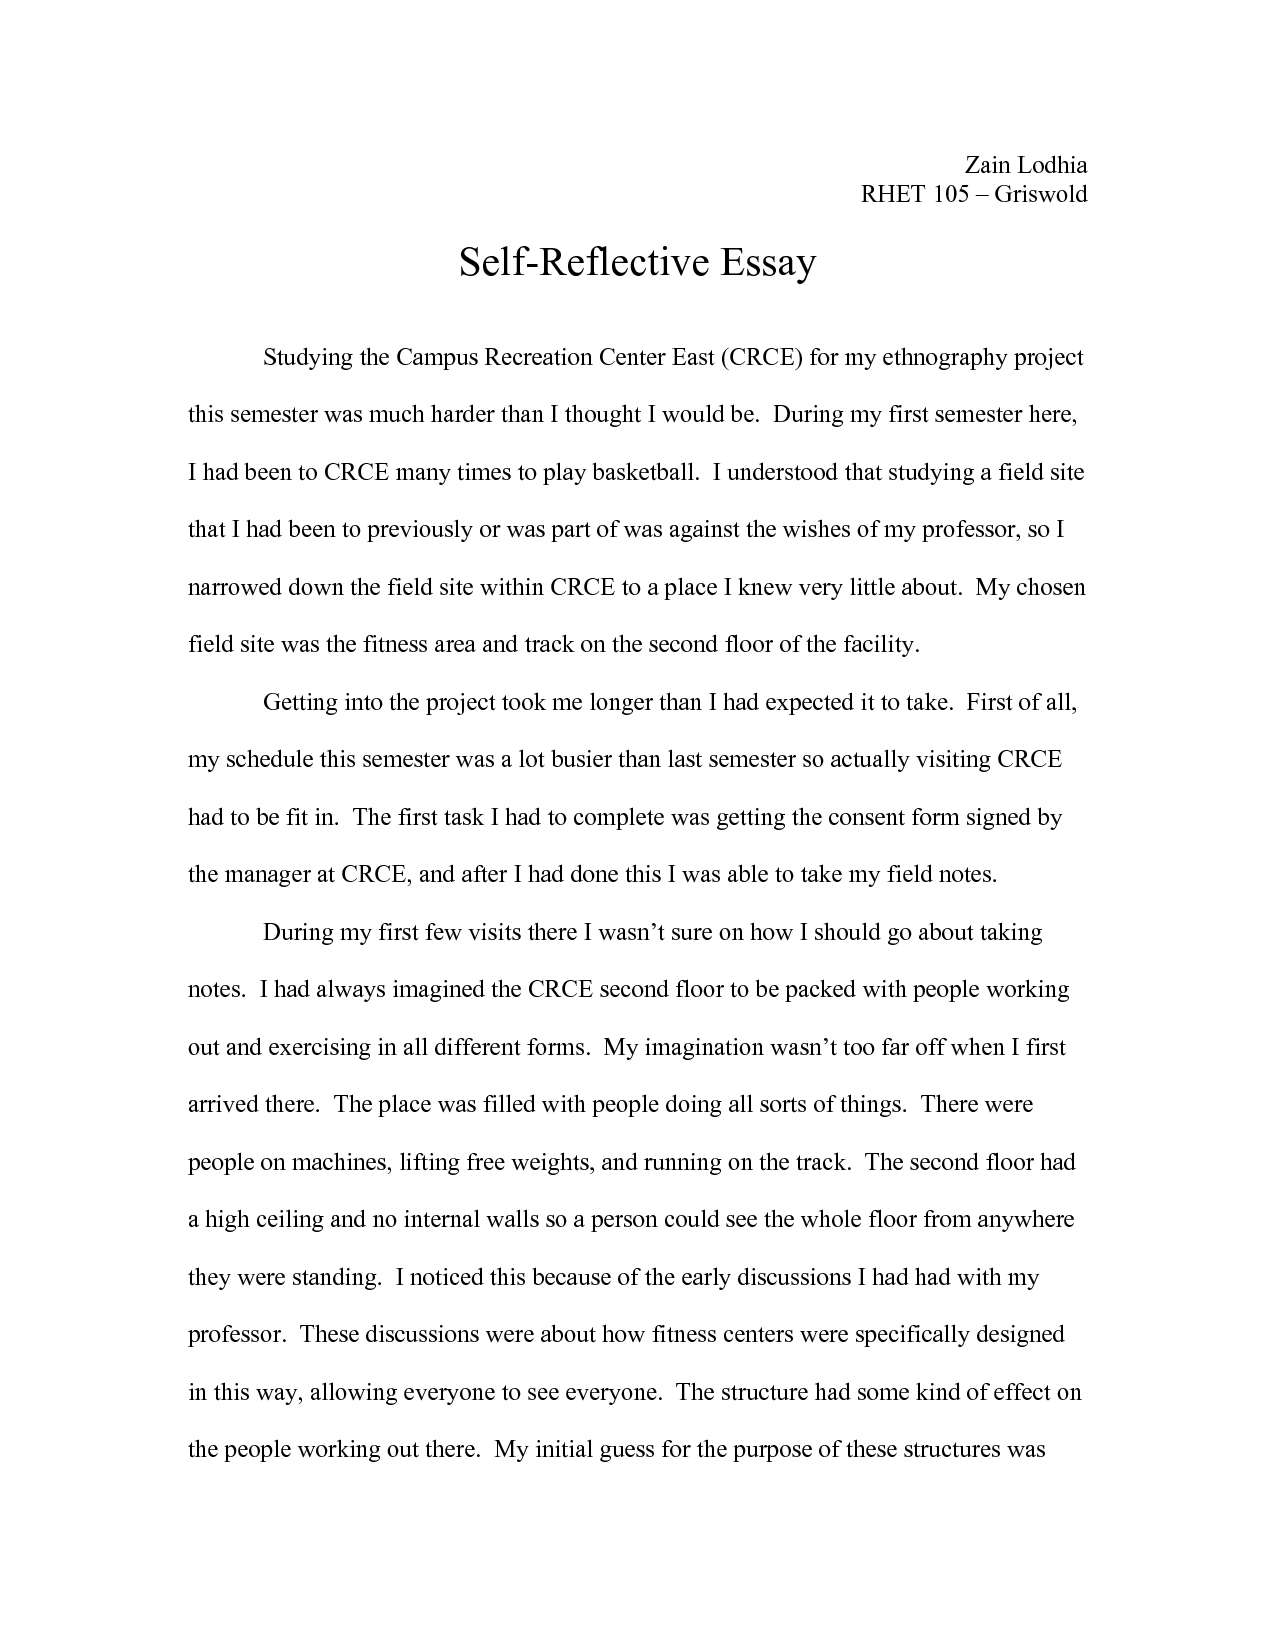 028 How To Write And Essay Qal0pwnf46 Unique An Conclusion University Level Outline For College Placement Test Full